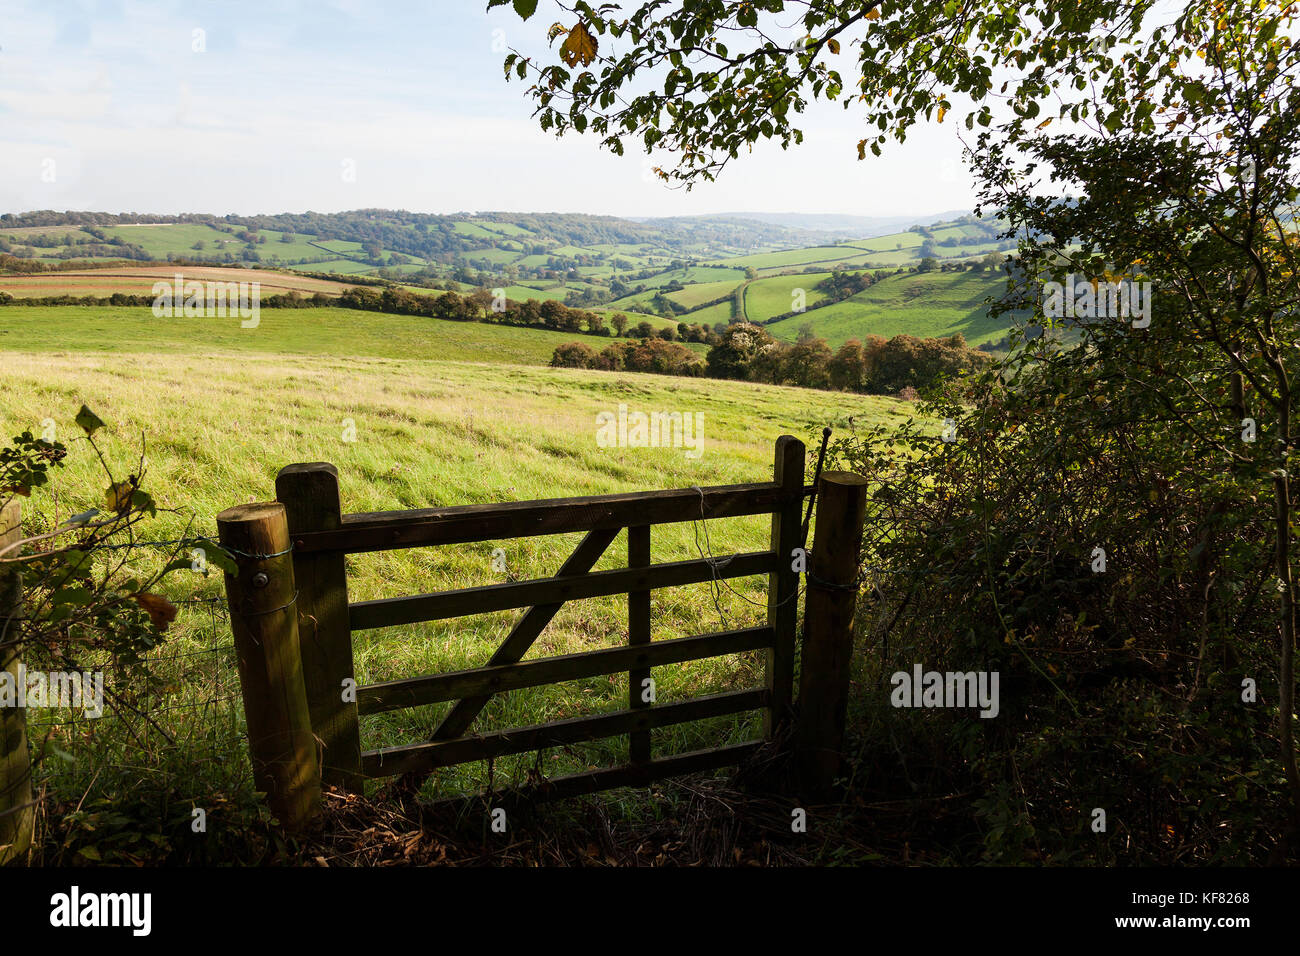 View of a farm gate leading into lush green countryside. Stock Photo